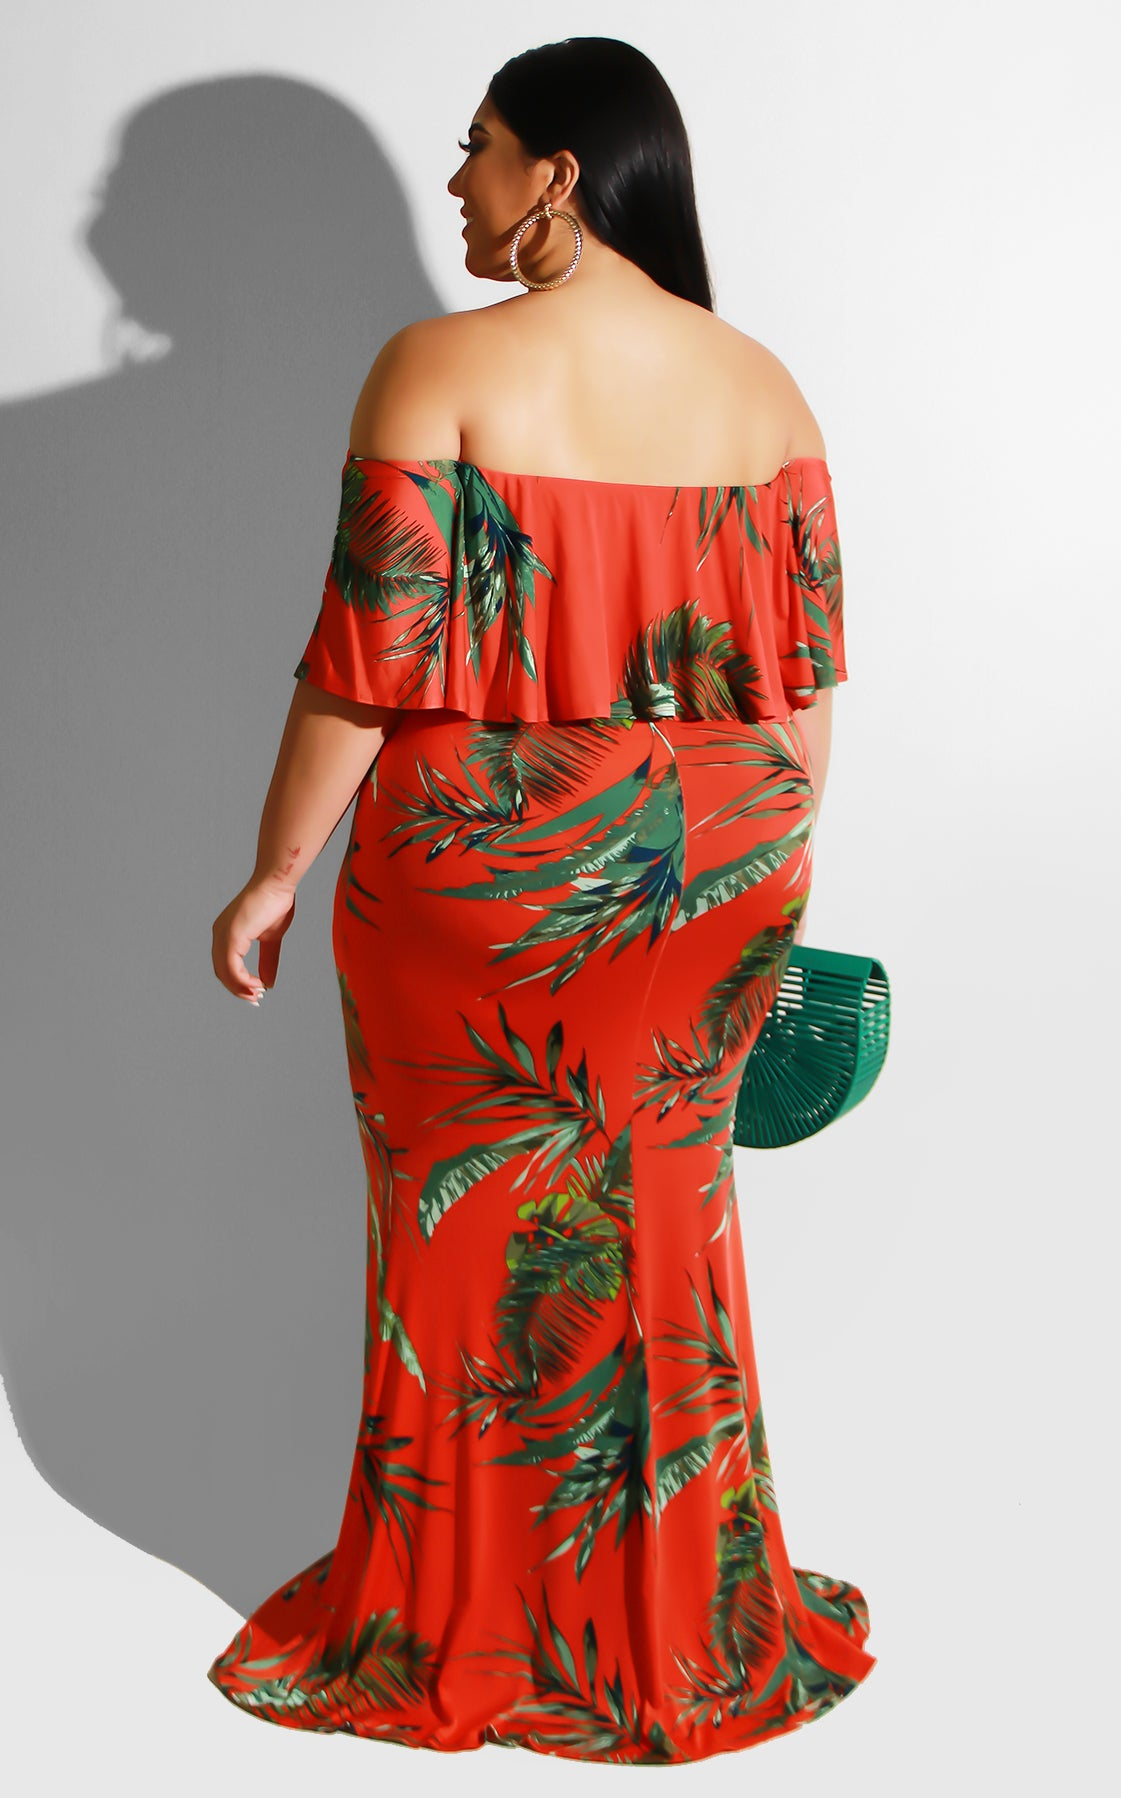 Curvy Curacao Maxi Dress